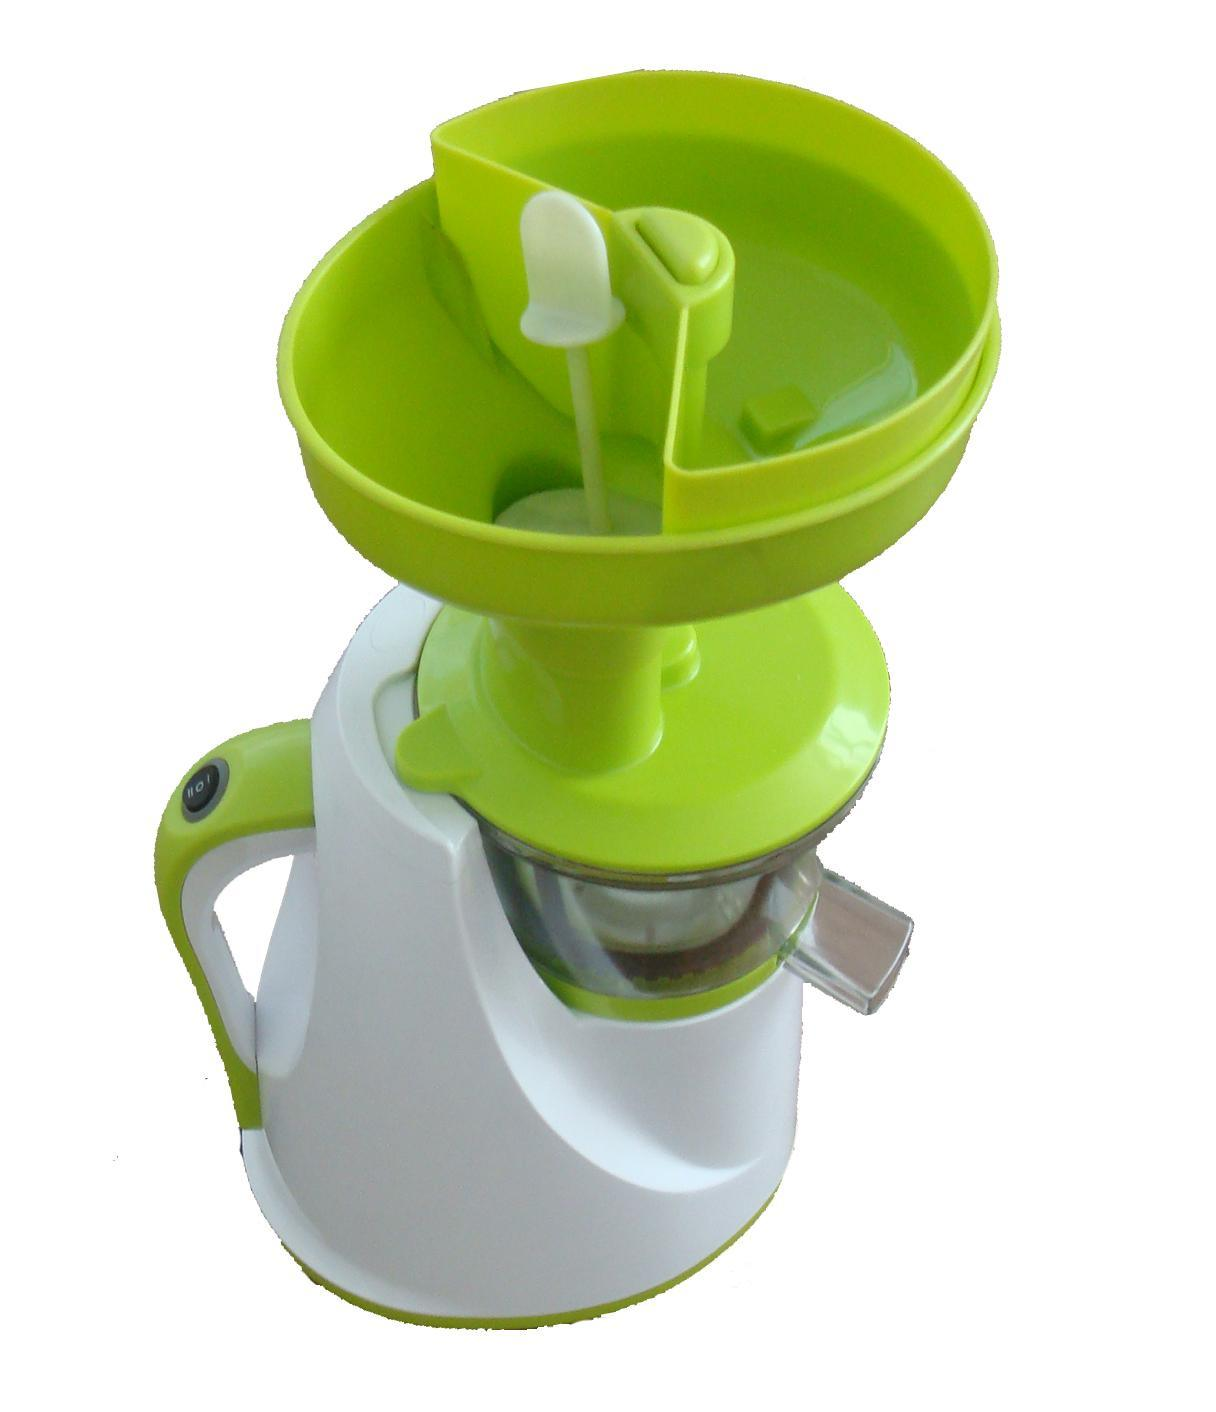 Slow Juicer Taiwan : China Slow Juicer- various Function - China Juice and Residue Separation Juicer, Slow Juicer